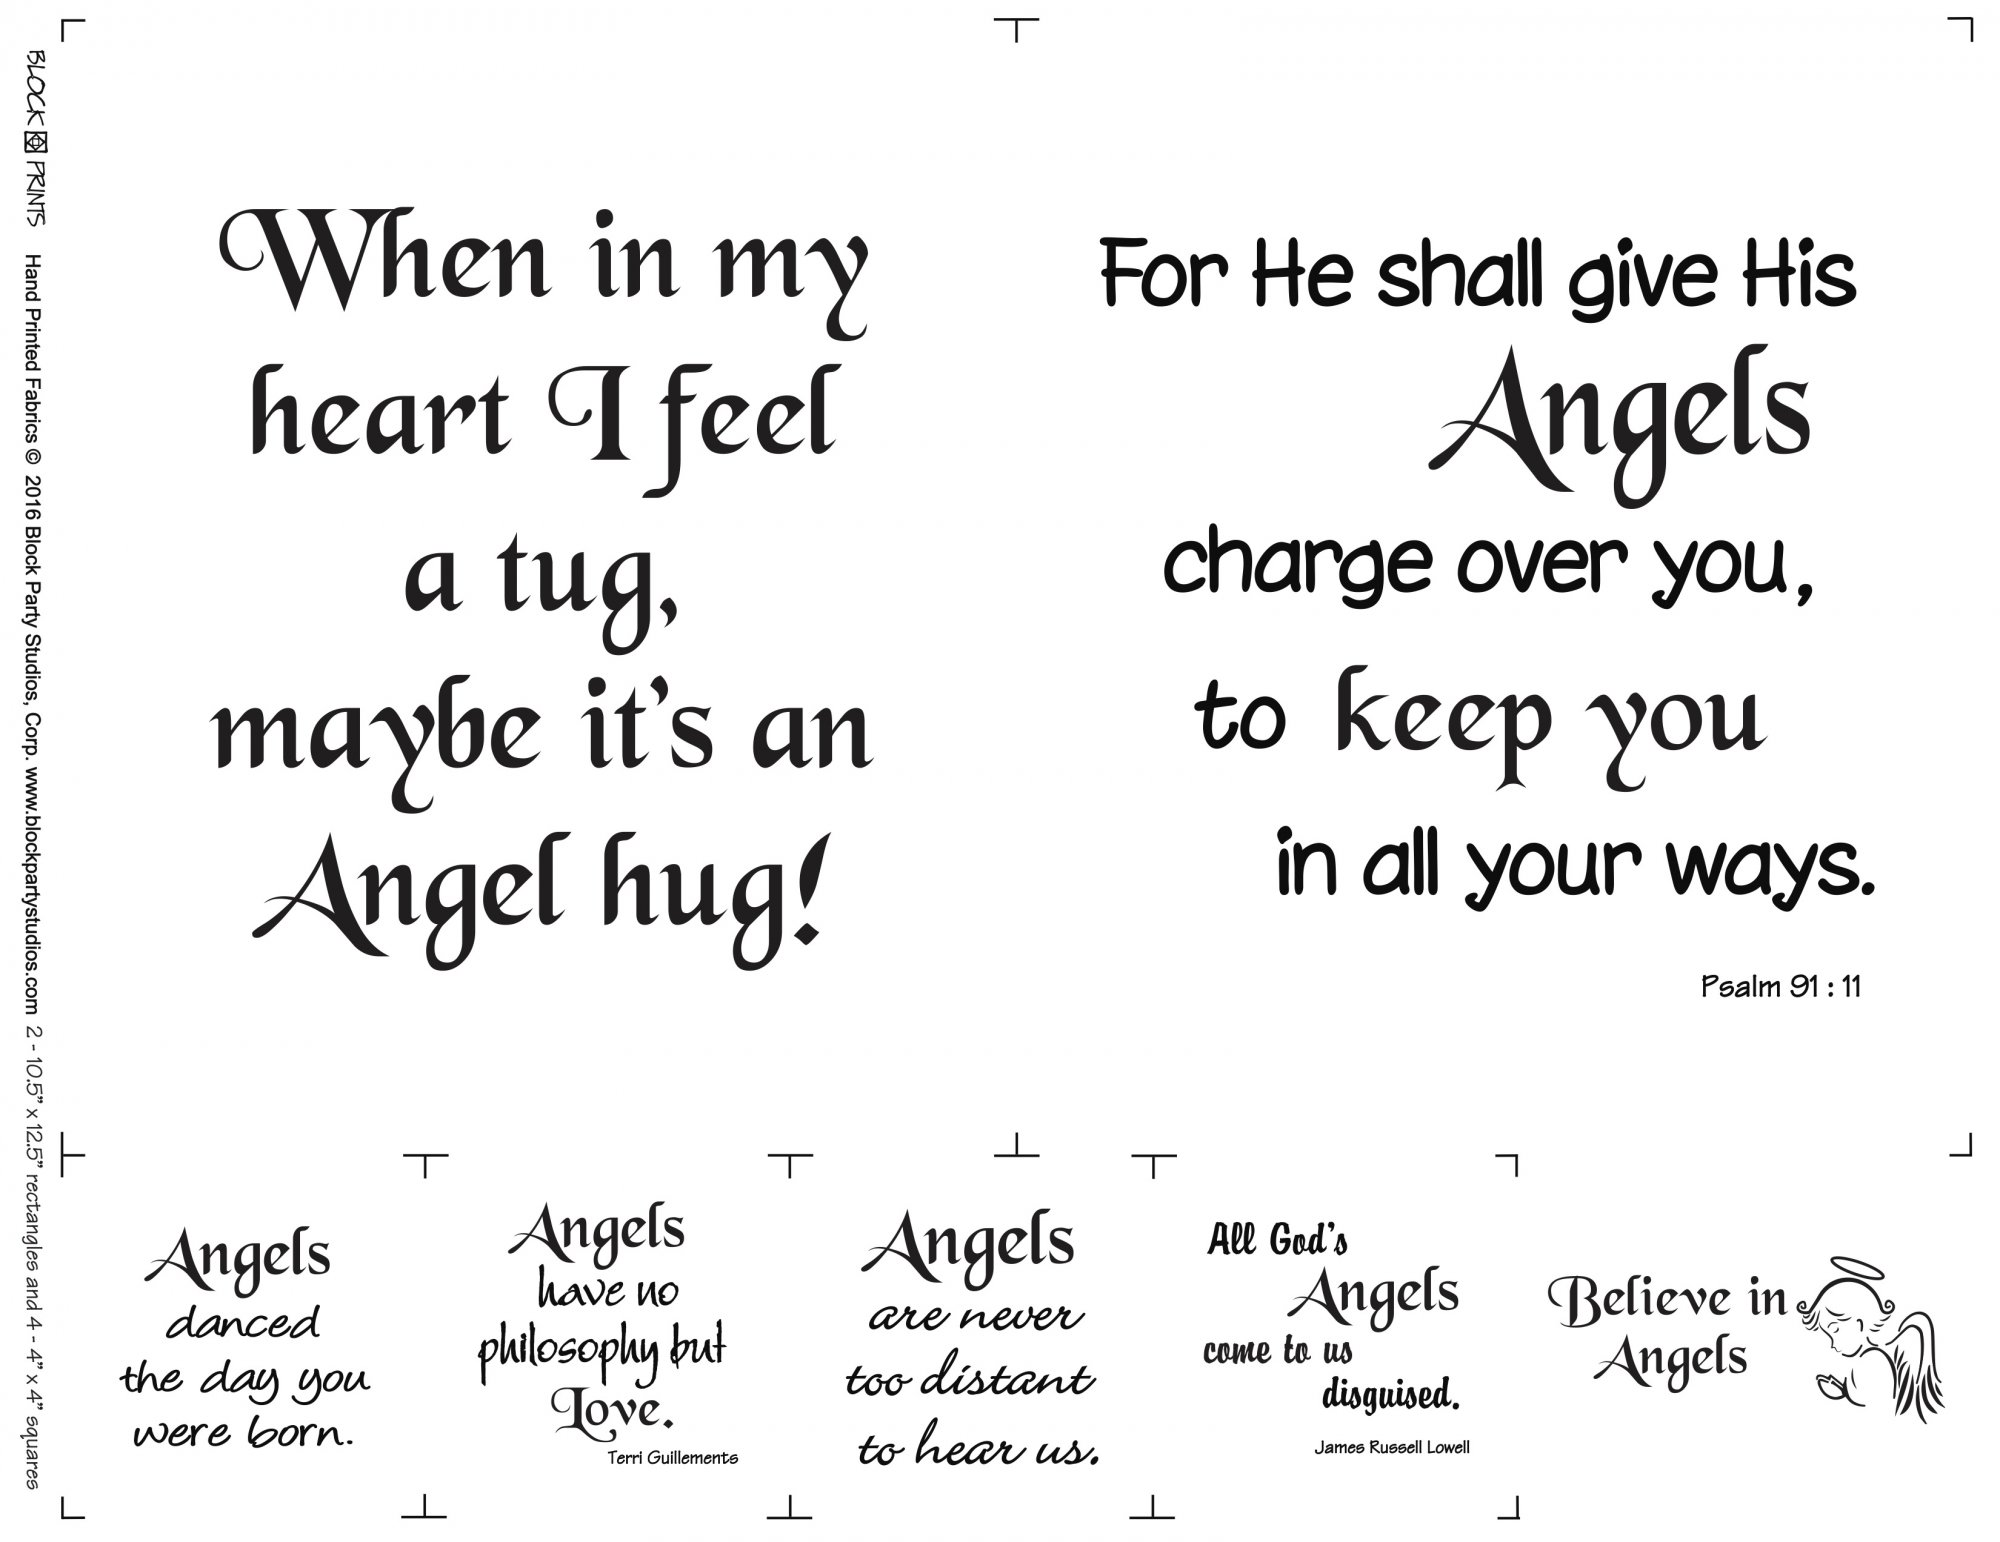 Believe in Angels Fabric Panel